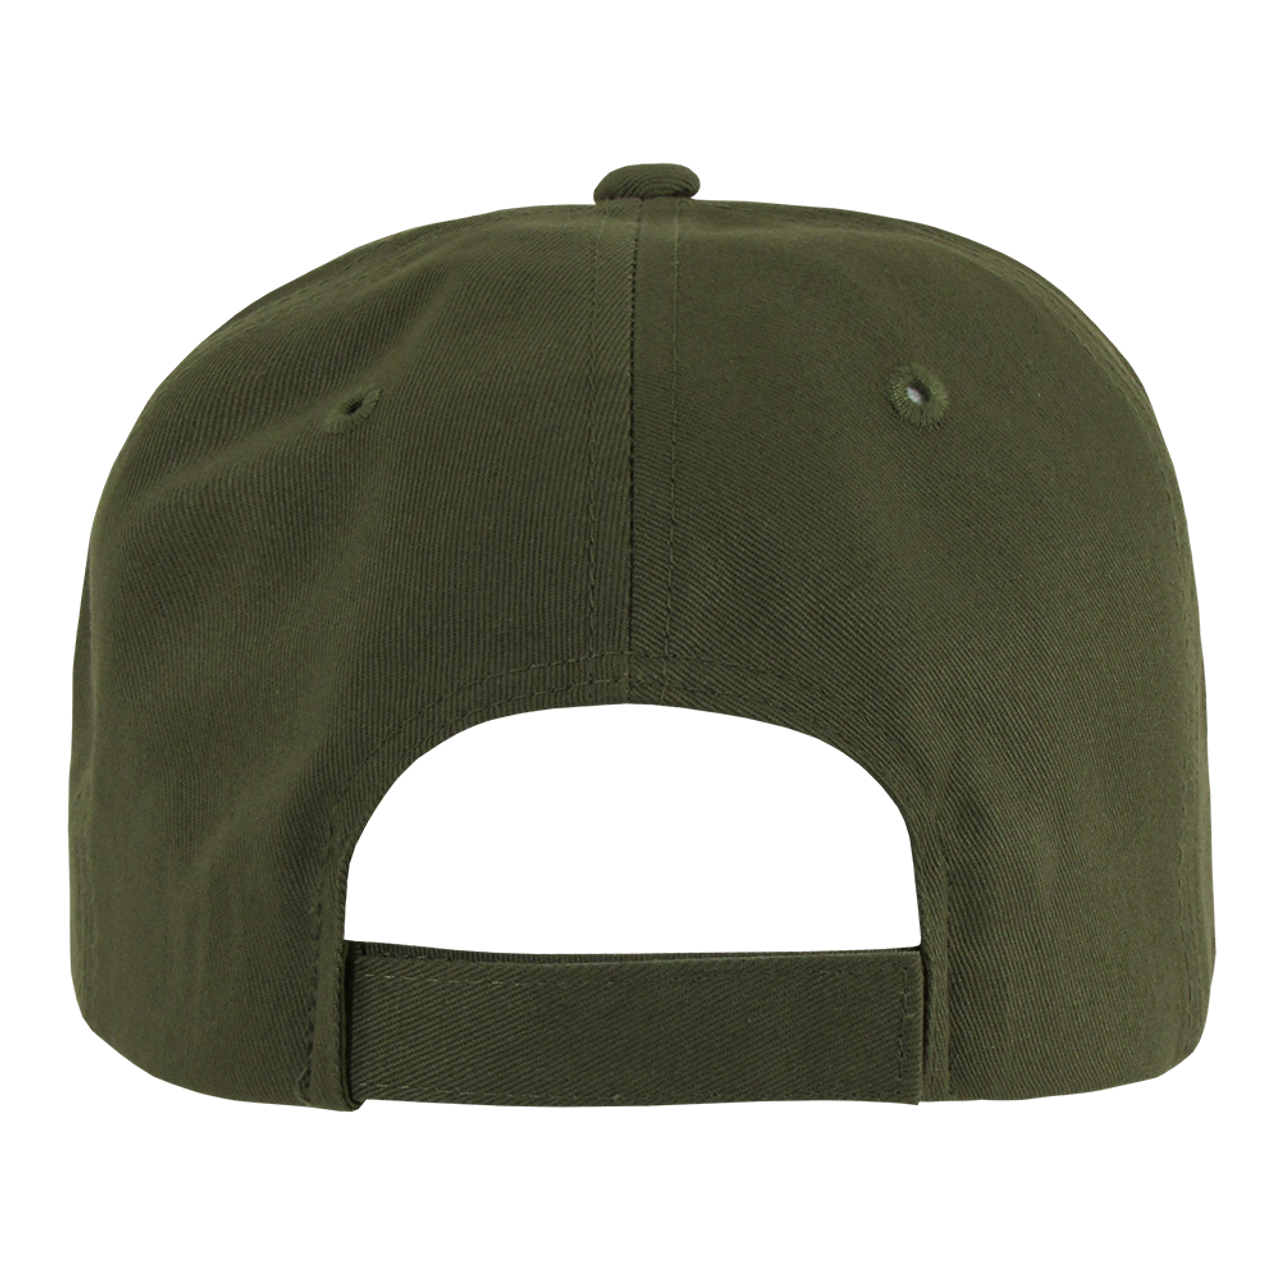 ... T76 - Tactical Operator Cap - American Flag Subdued - Olive Drab ... 6951af111a7